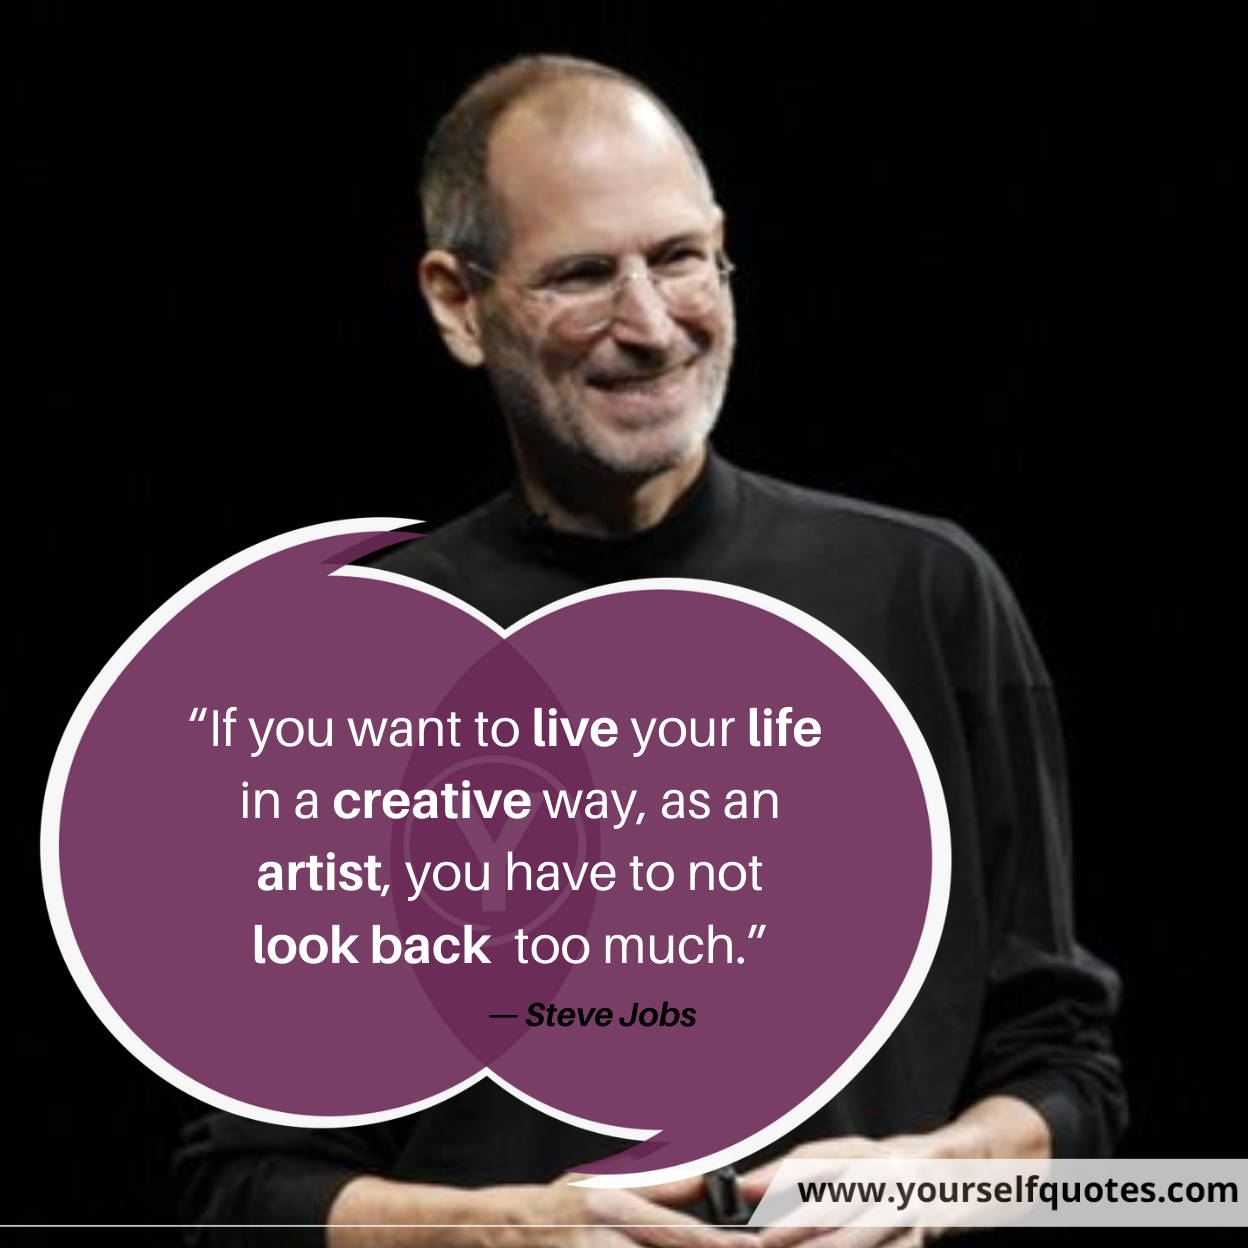 Steve Jobs Creativity Quotes Images